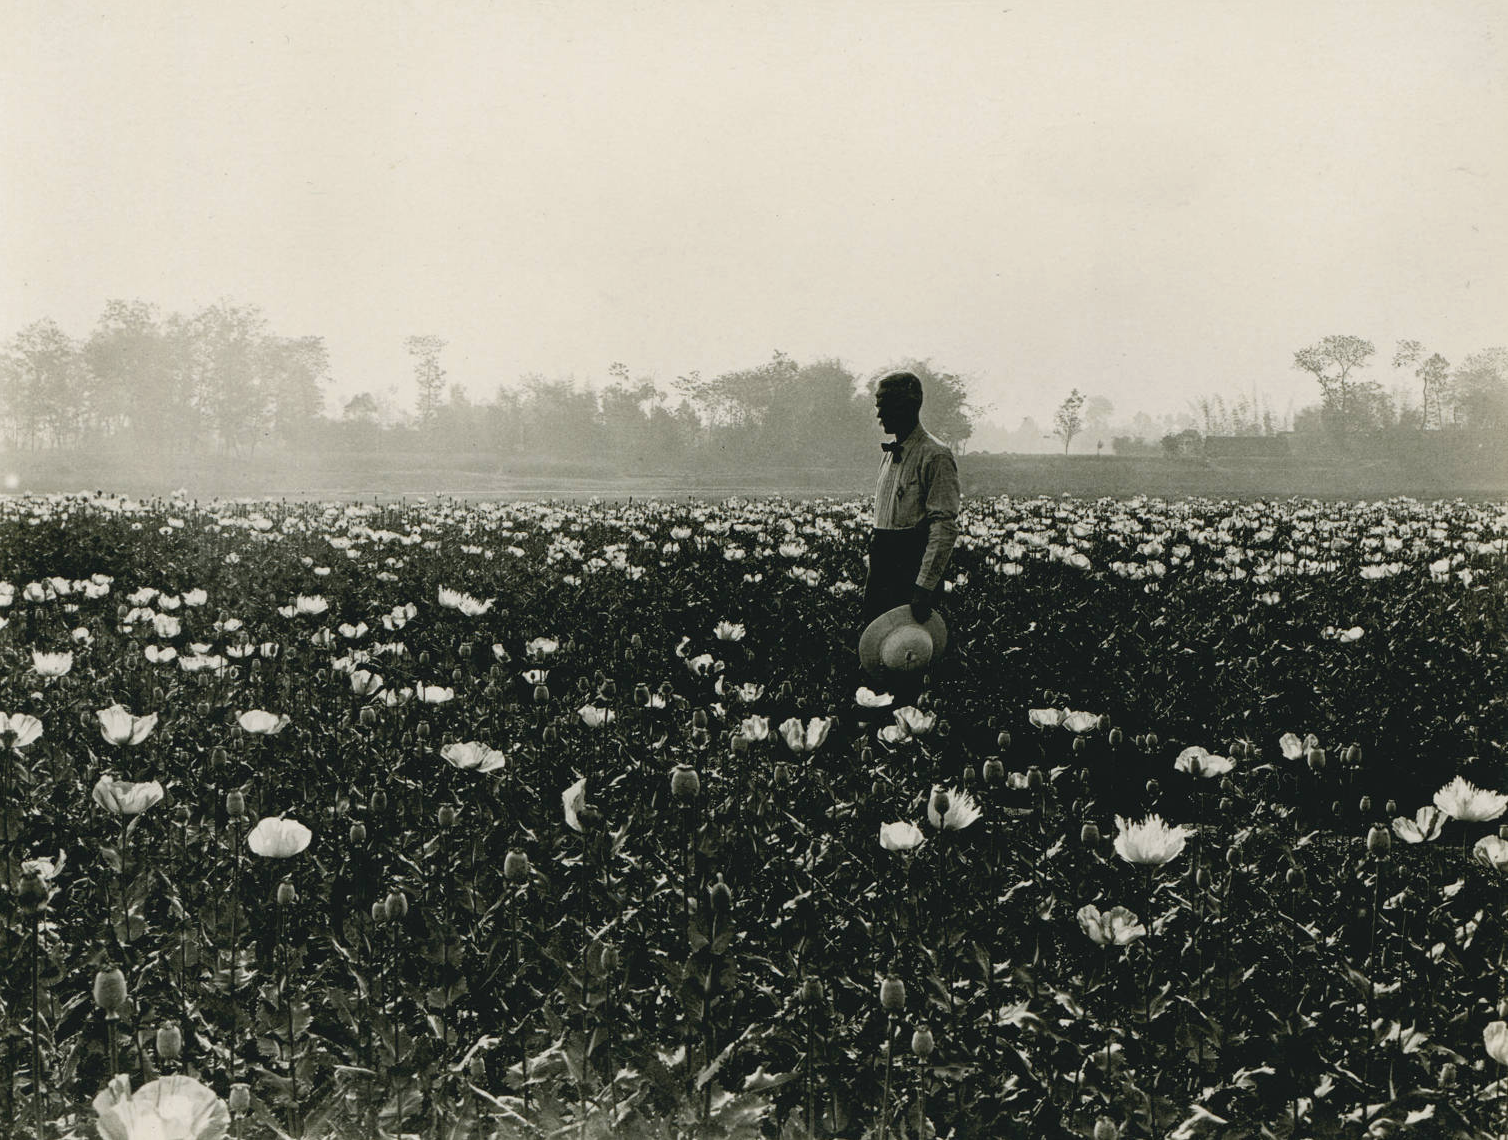 Opium meditations in a Szechuan poppy field. Prof. E.D. Burton, 1909-04, black and white photograph, 4.03 x 3.10.T.C. Chamberlin Collection